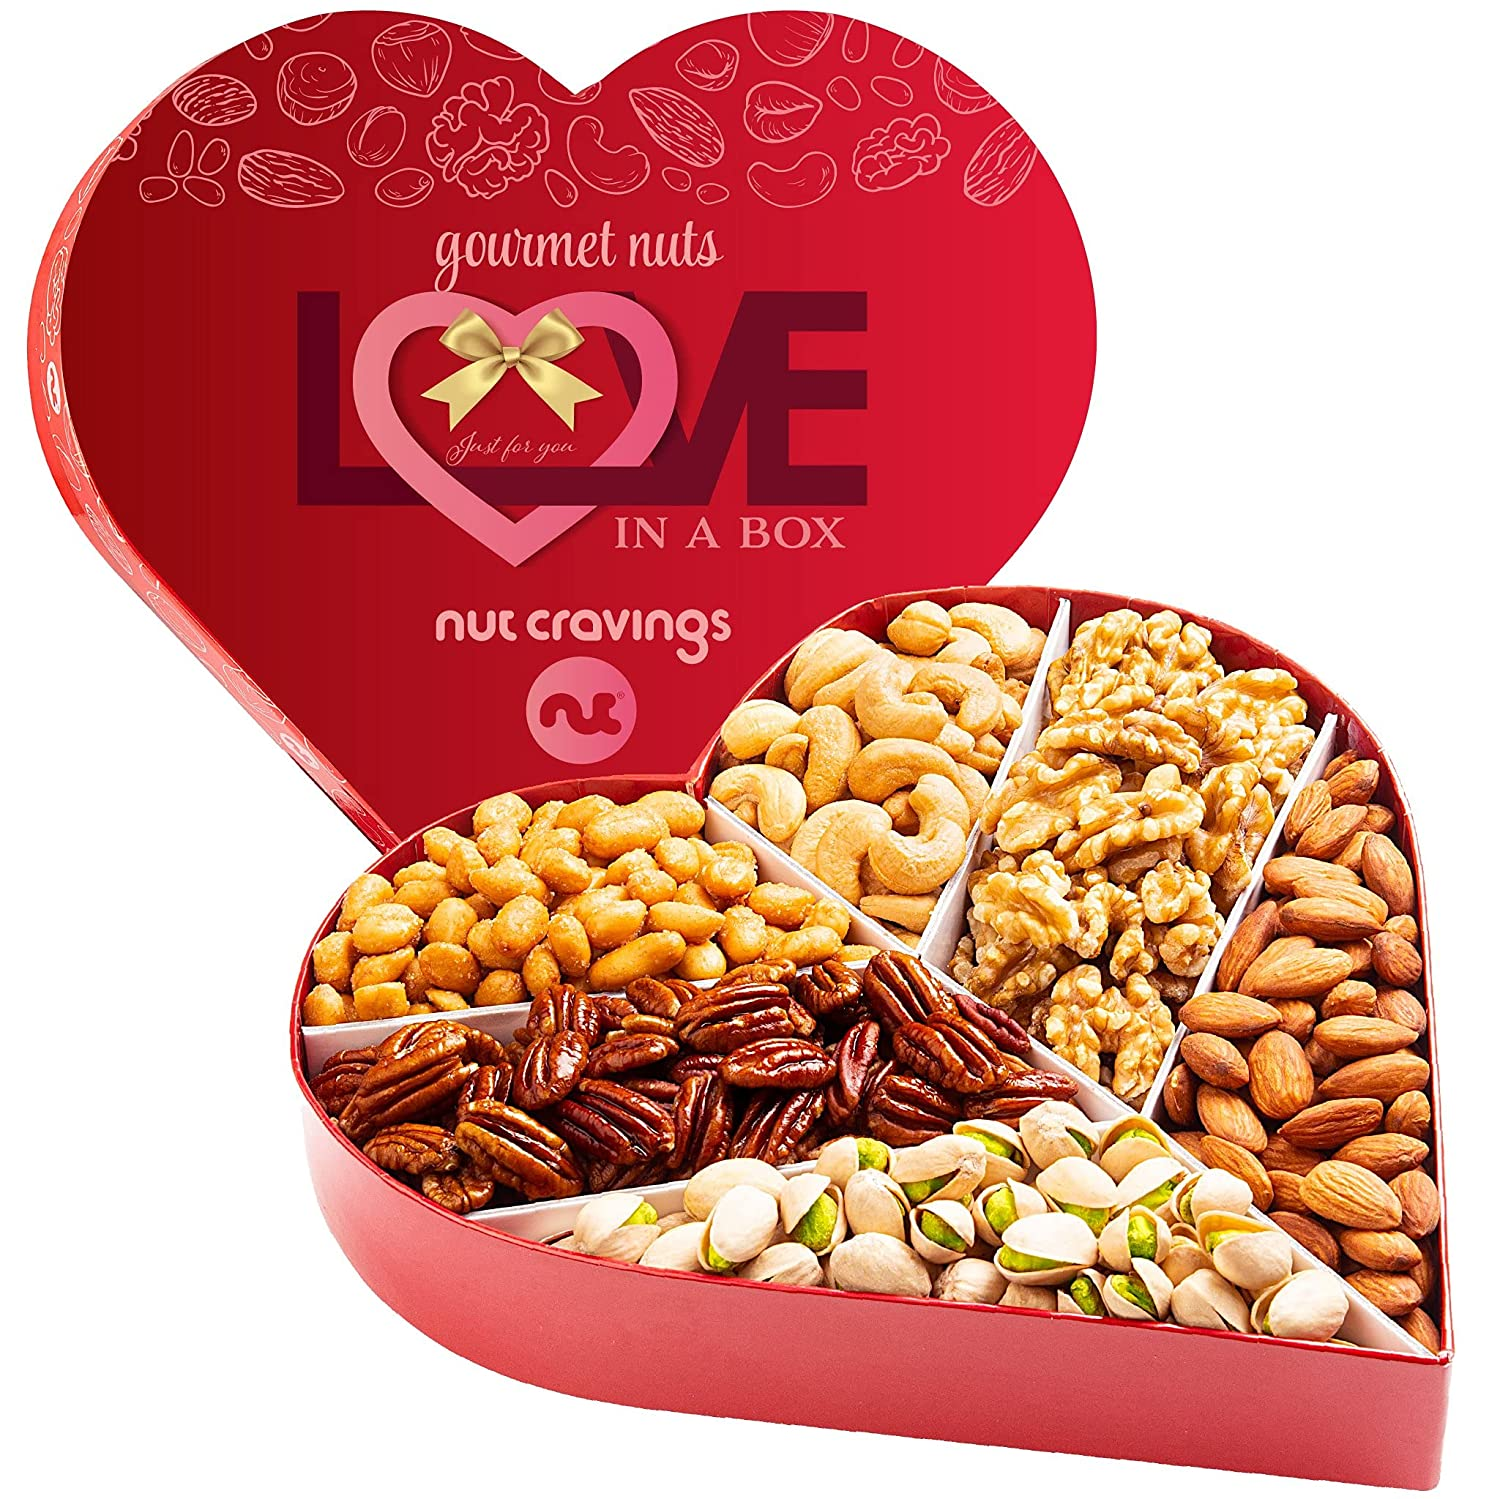 Gourmet Nut Gift Basket in Heart Box (6 Piece Assortment, 1 LB) - Fathers Day Prime Arrangement Platter, Birthday Care Package Variety, Healthy Food Kosher Snack Tray for Mom, Women, Men, Adults